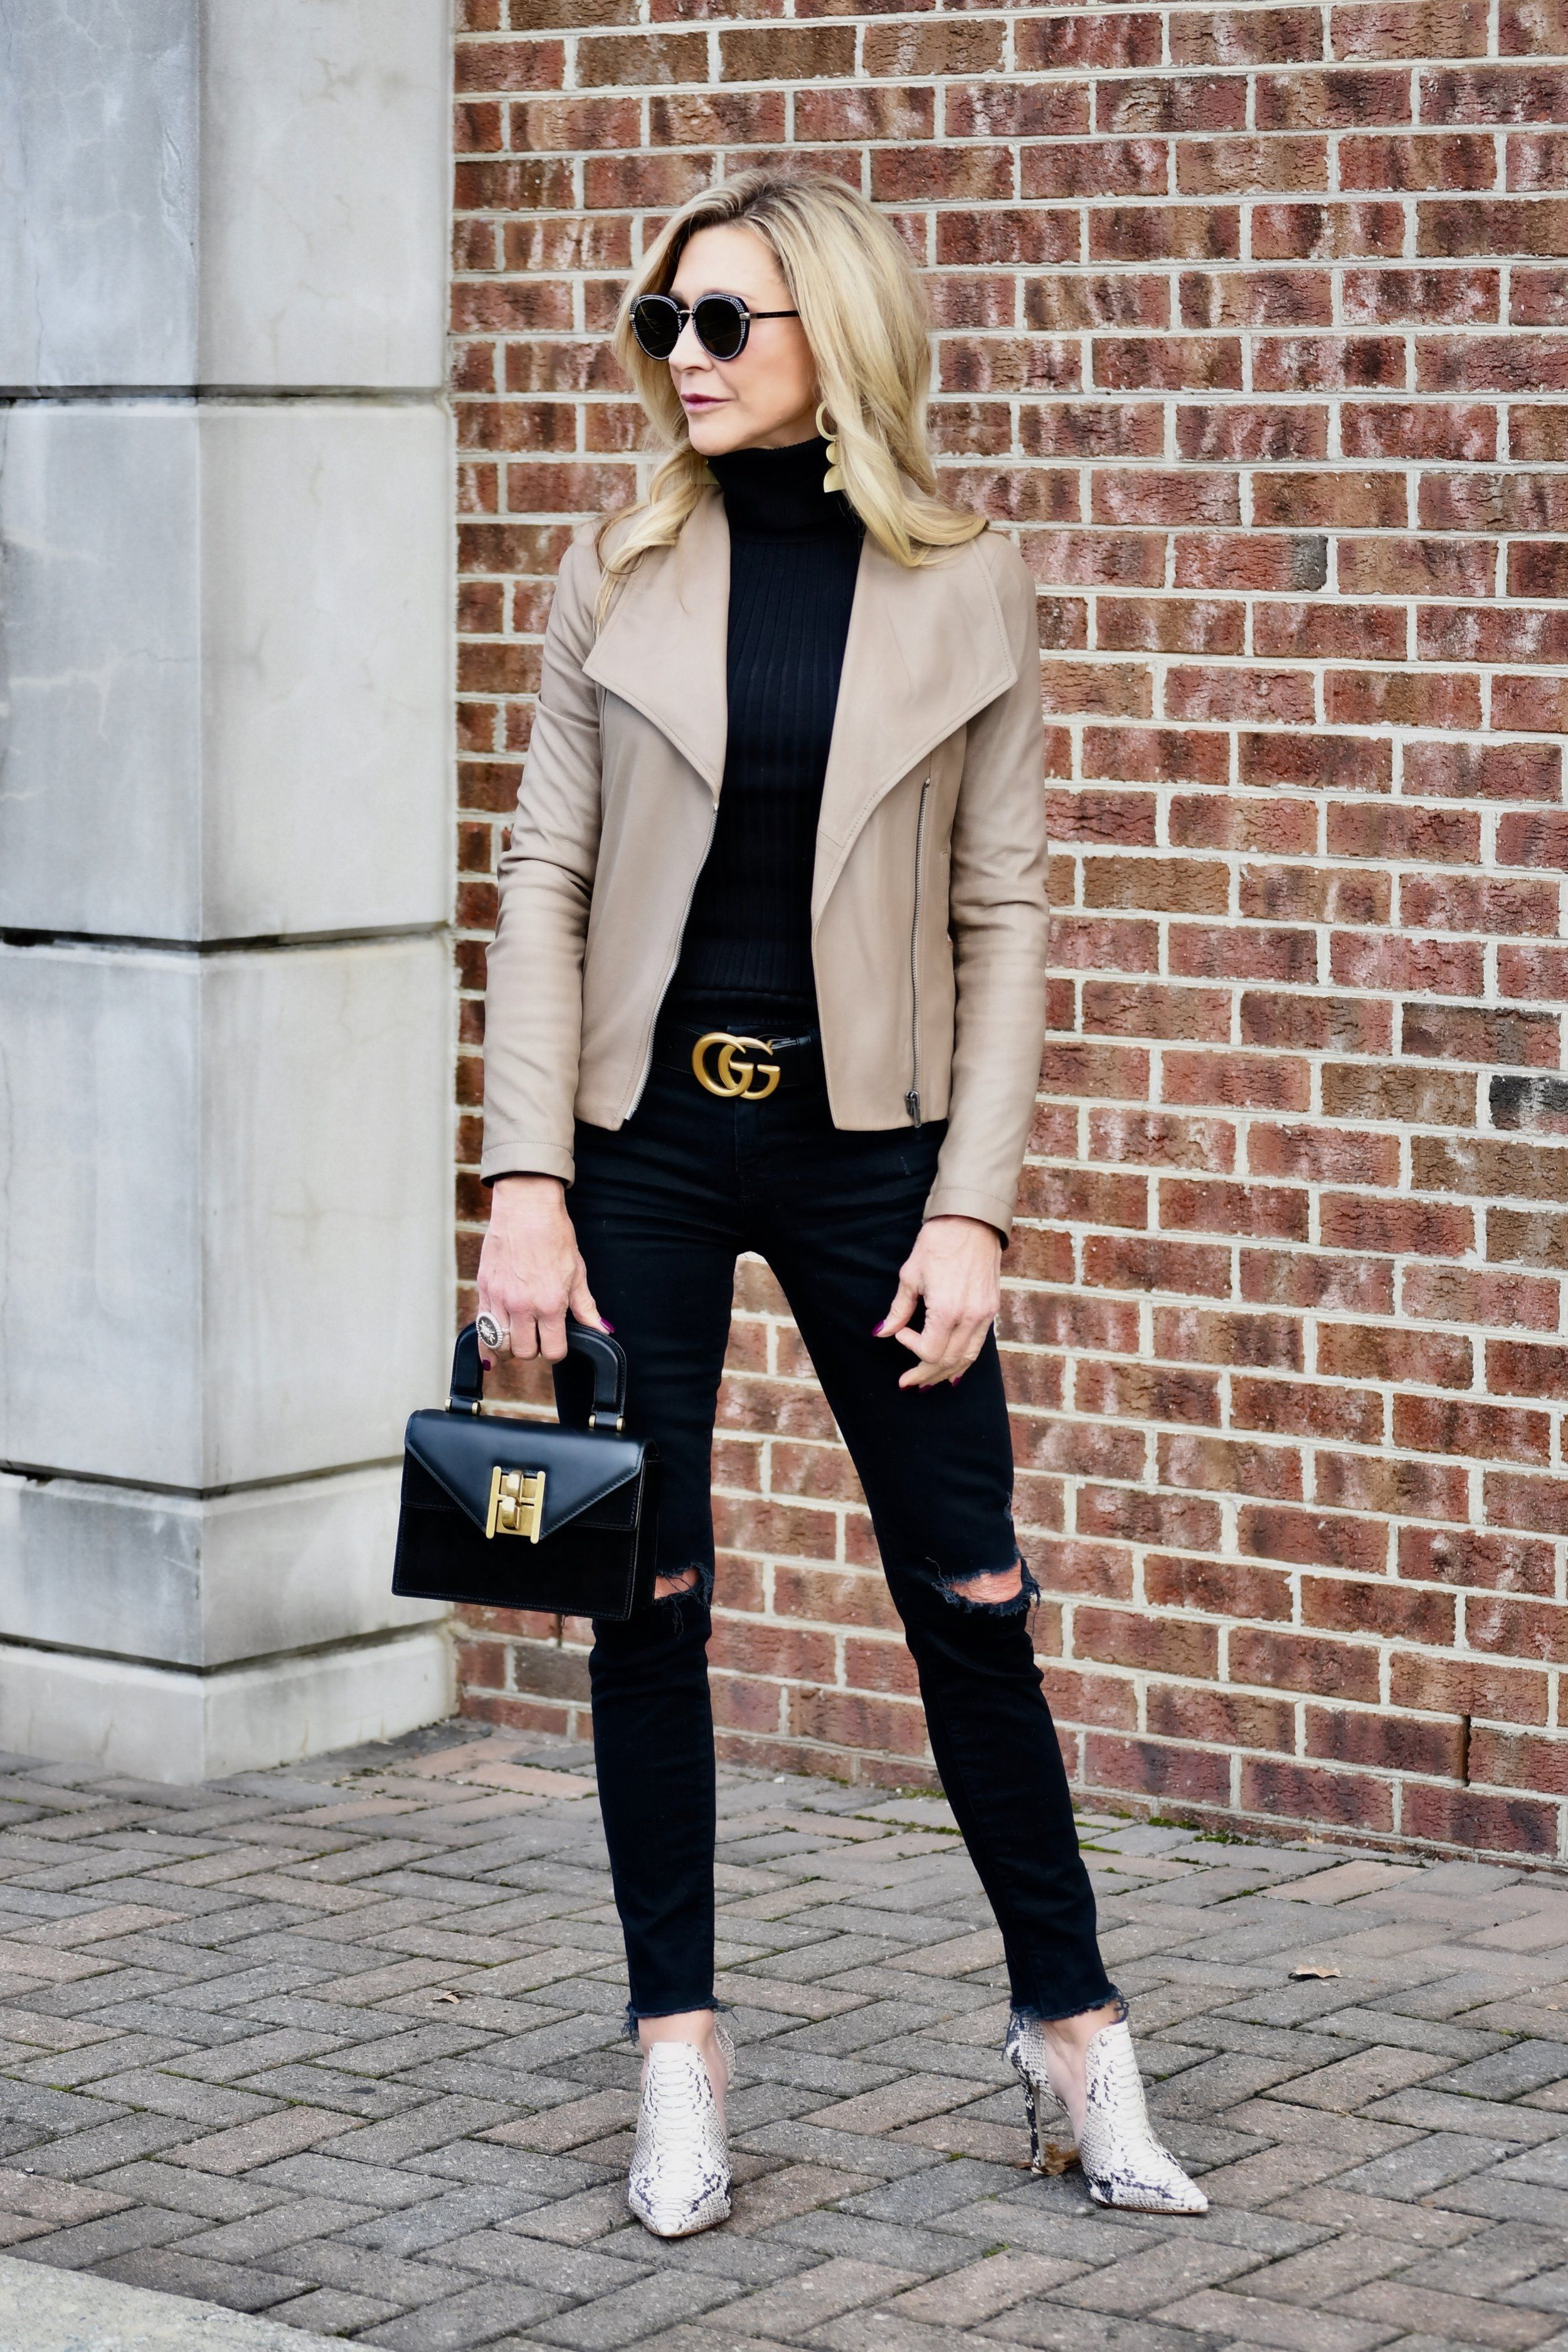 Every Day Effortless Style Crazy Blonde Life White Leather Jacket Outfit Beige Leather Jacket Outfit Leather Jacket Outfit Fall [ 3750 x 2500 Pixel ]